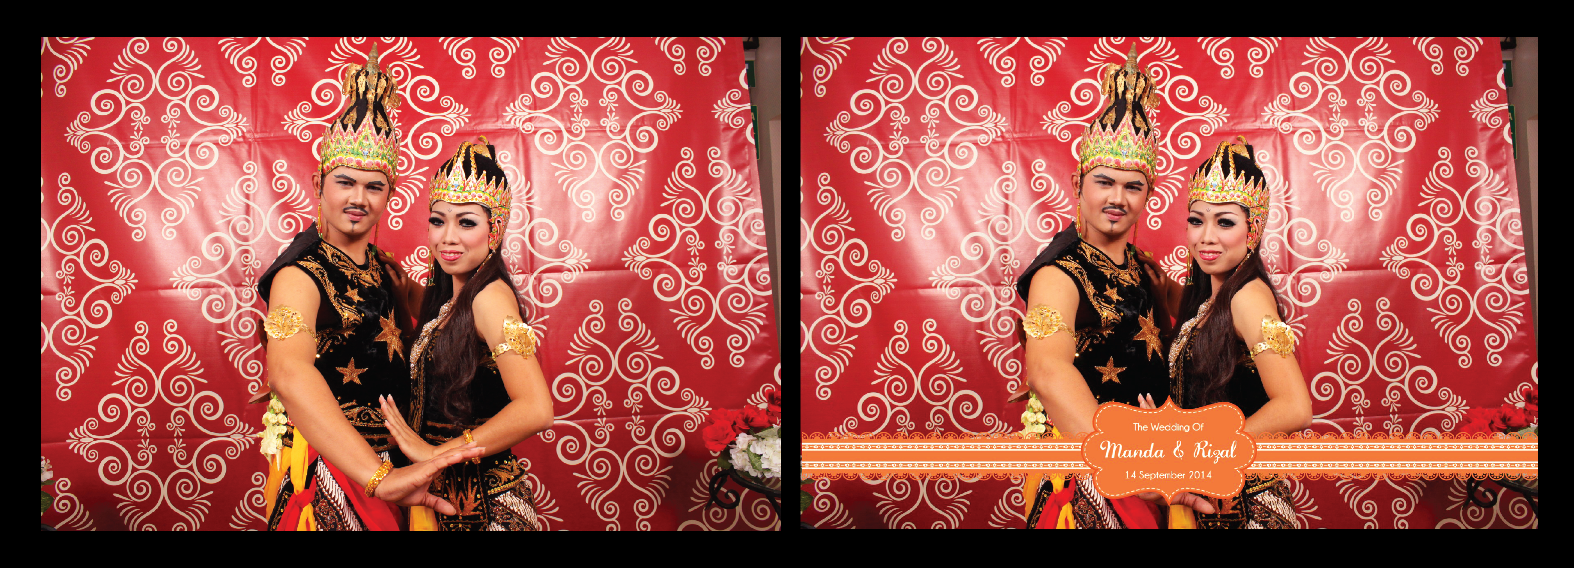 Photo Booth Bandung (Manda & Ijal Wedding)